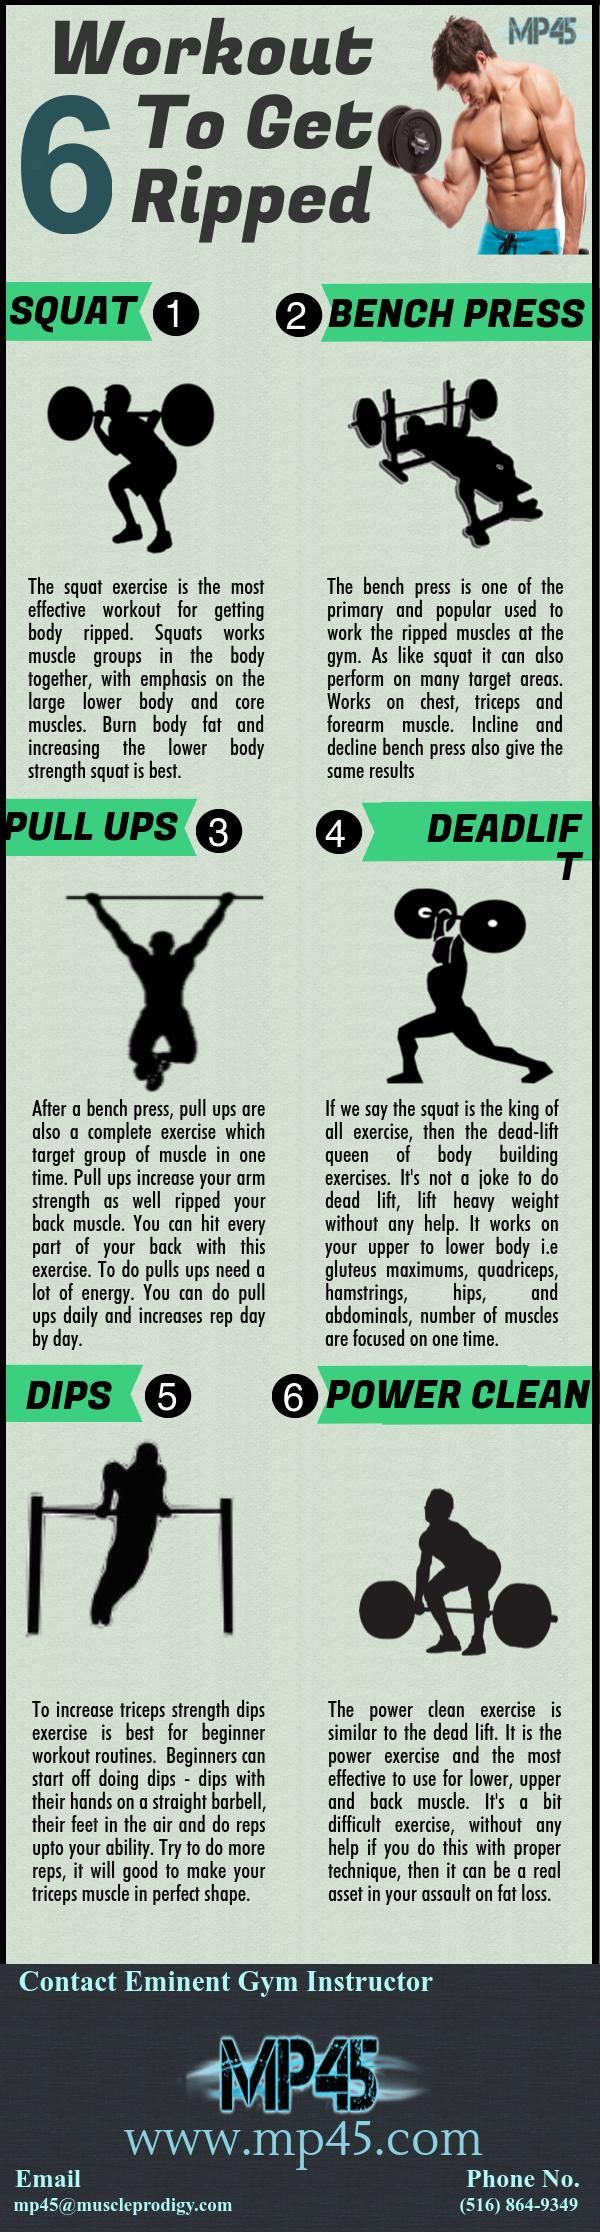 Workout To Get Ripped   Get ripped workout, Fun workouts, Gym plan